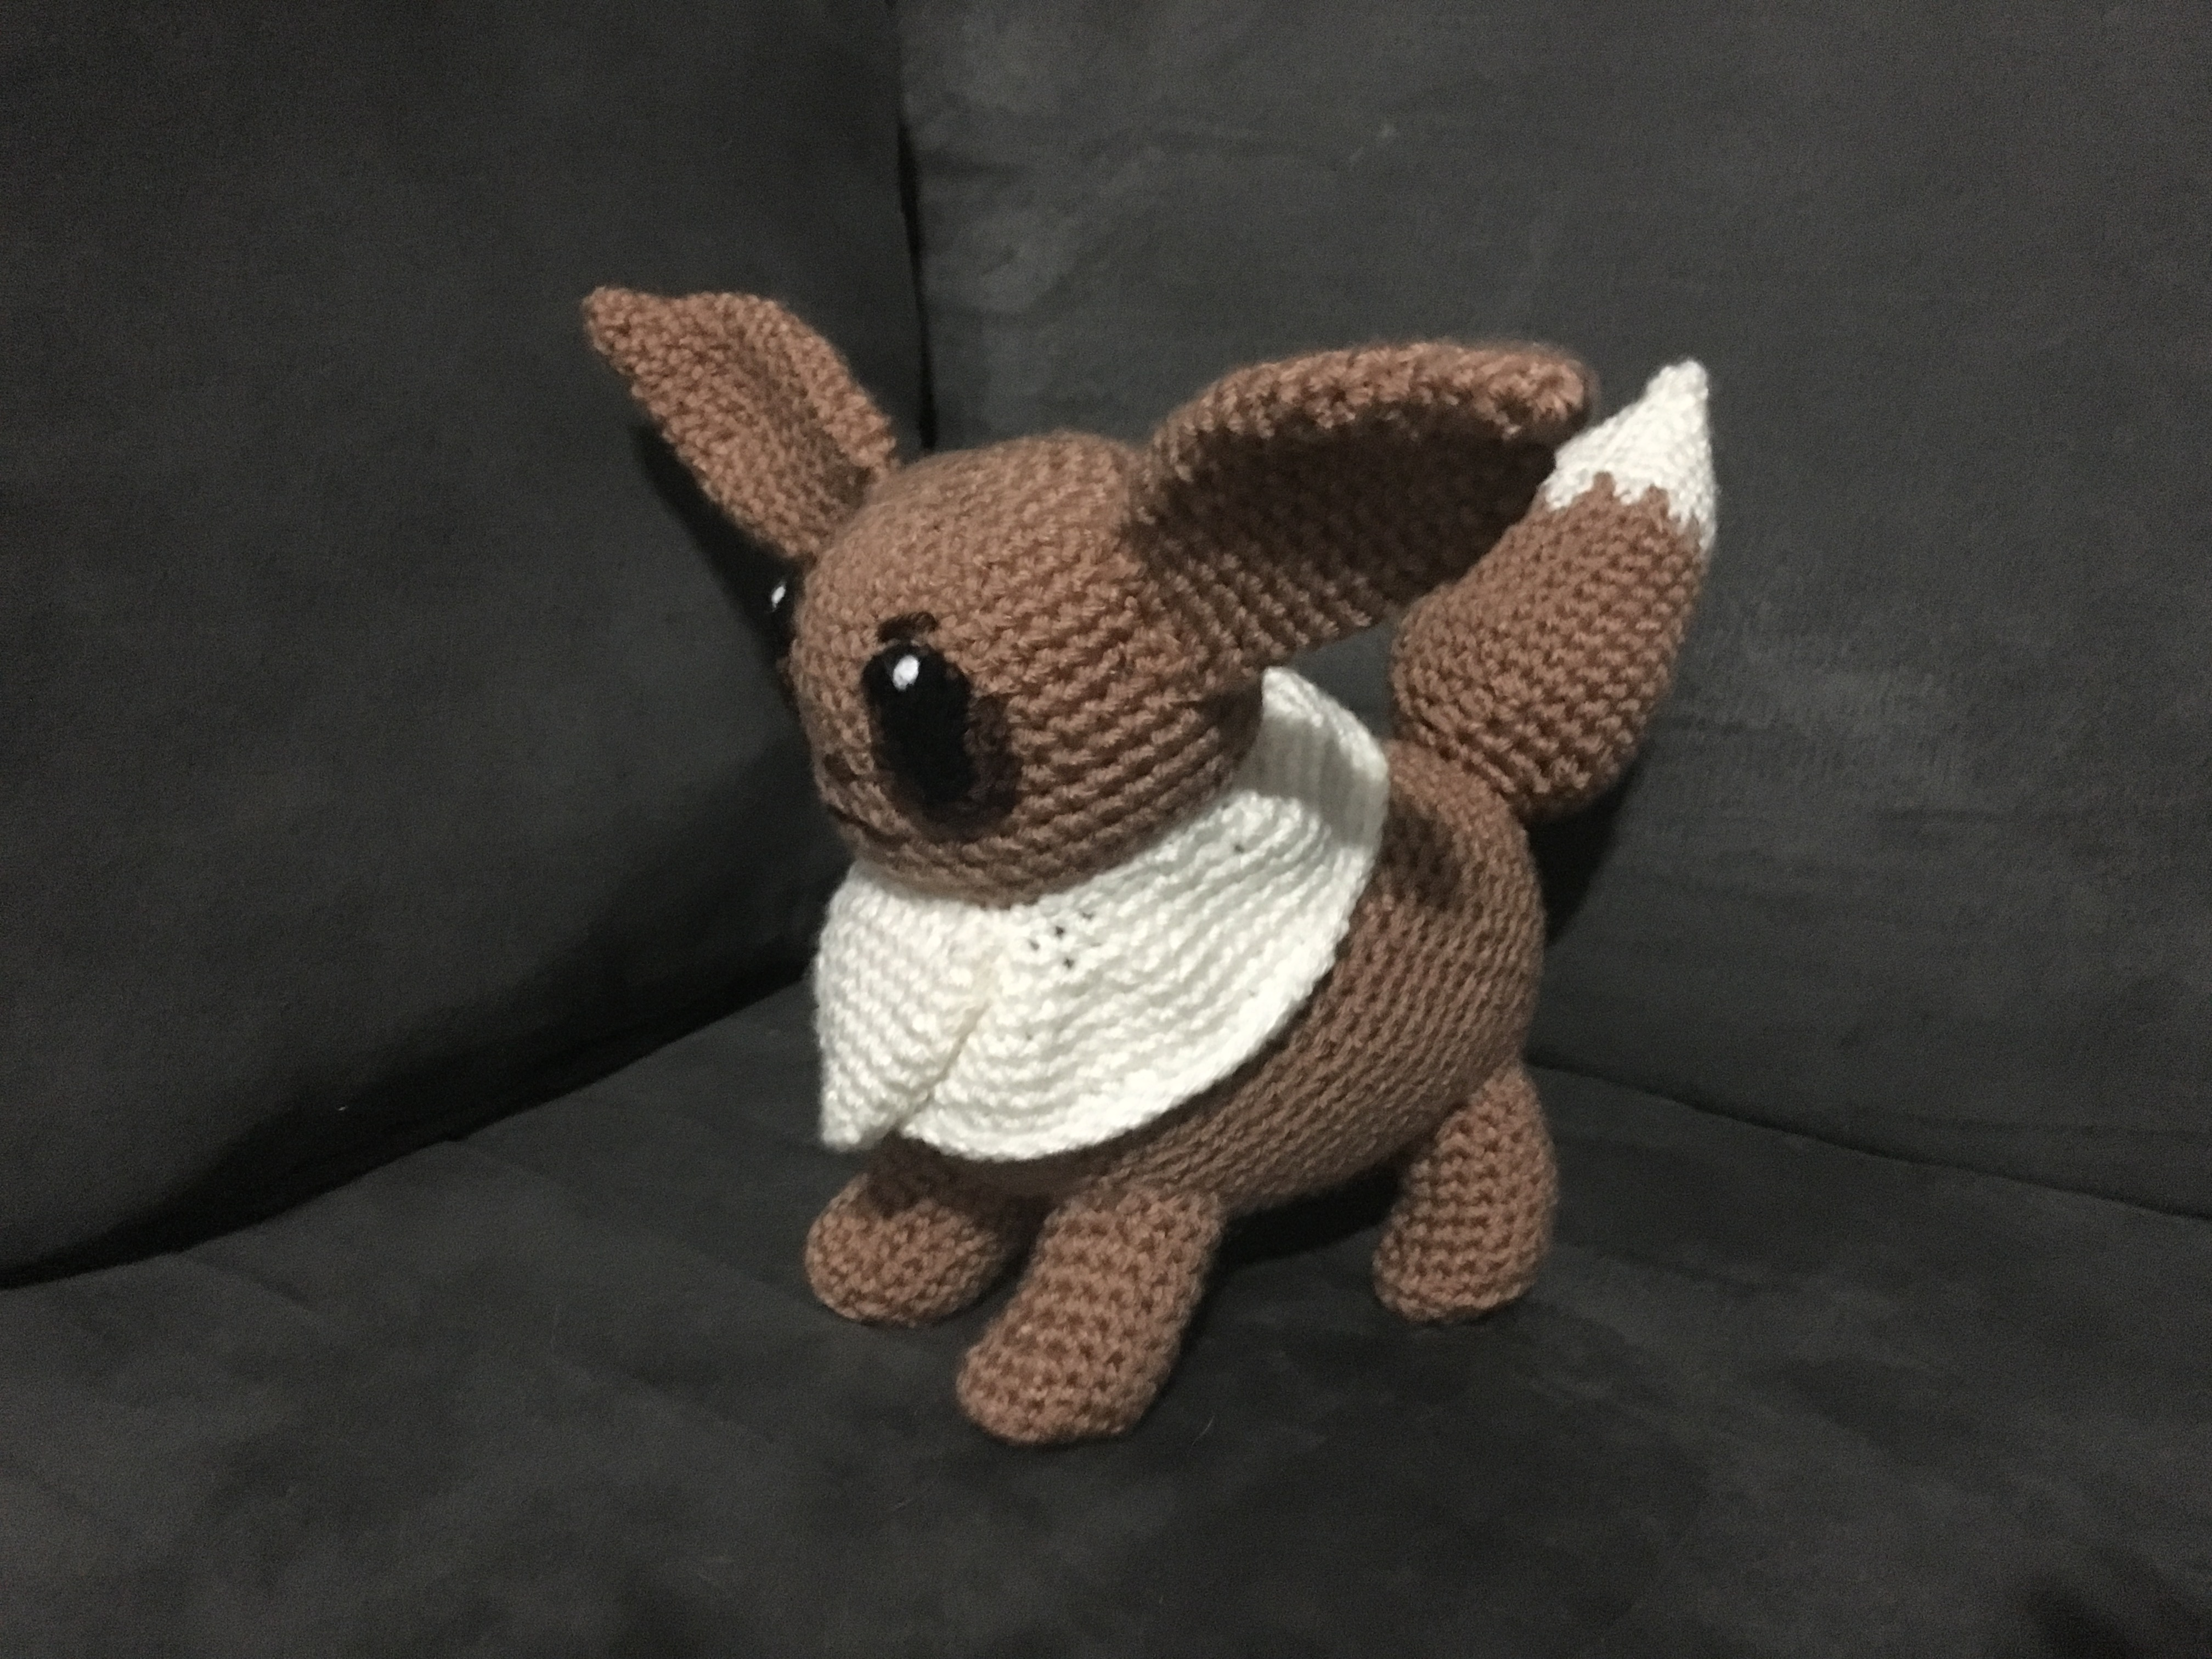 Eevee  with modifications